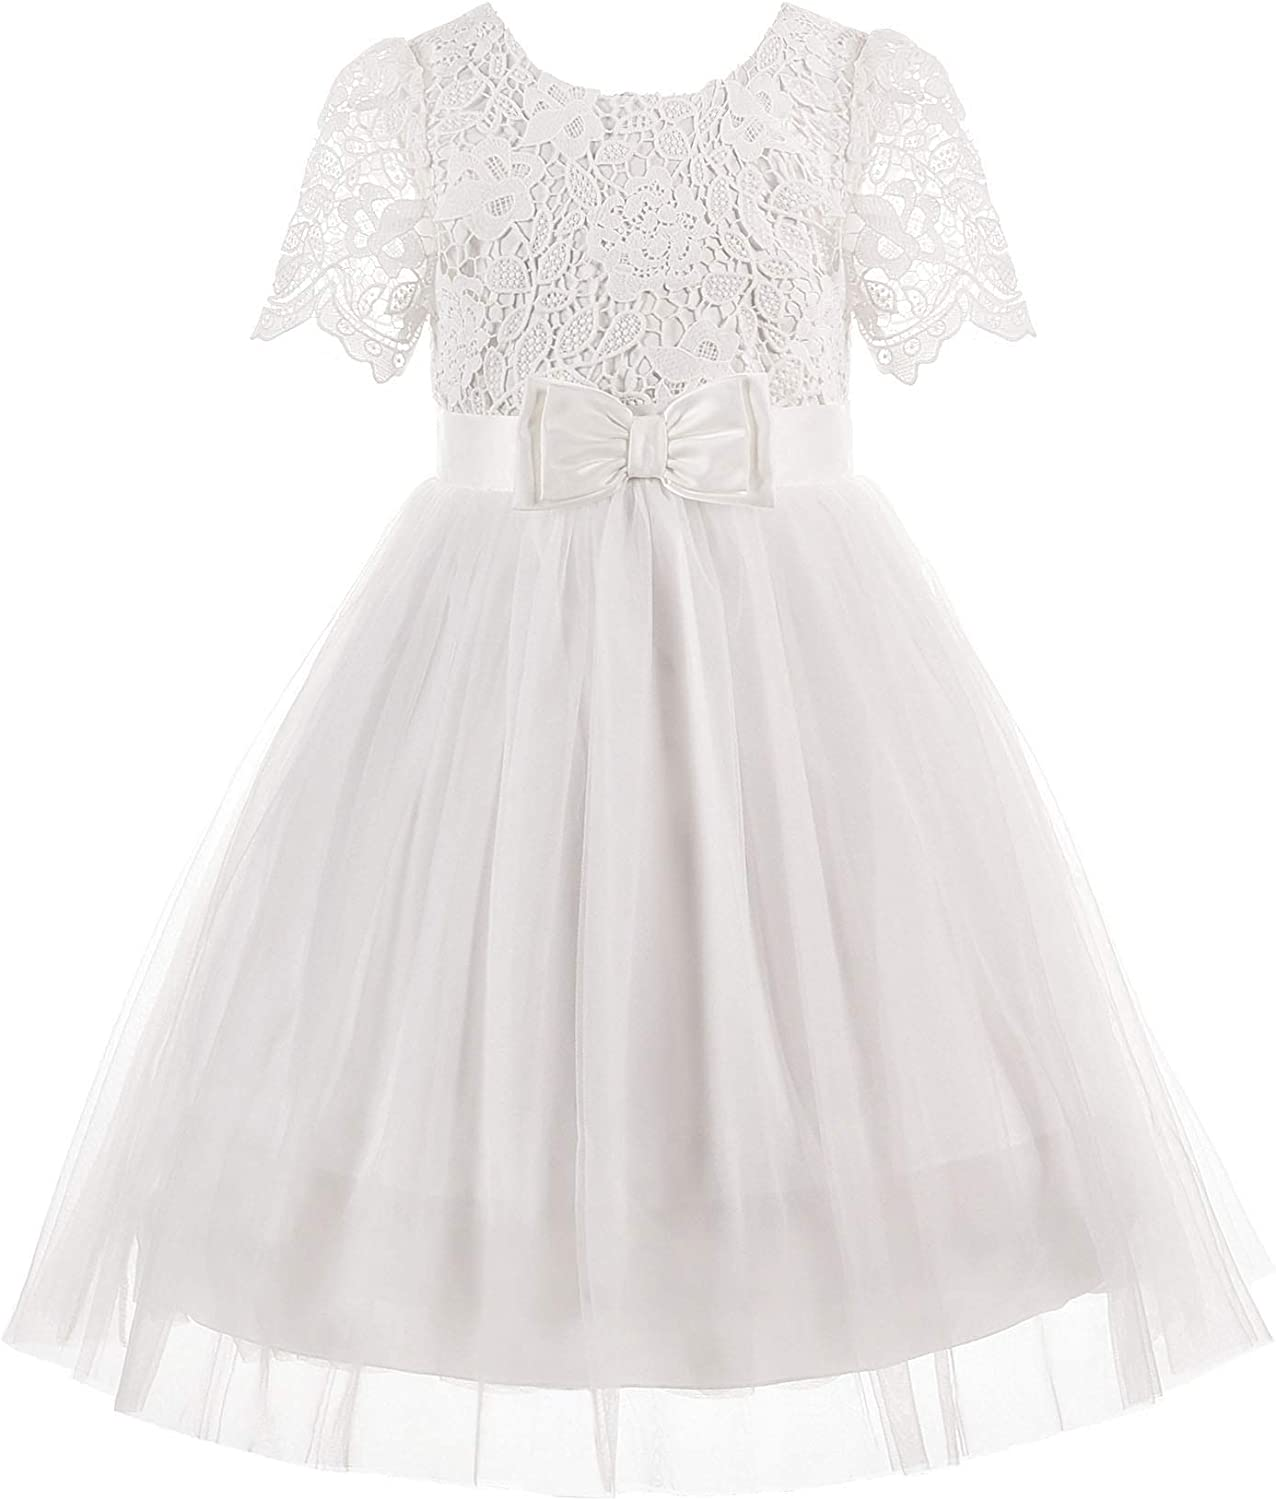 ReliBeauty Ivory Lace First Communion Flower Girl Dress